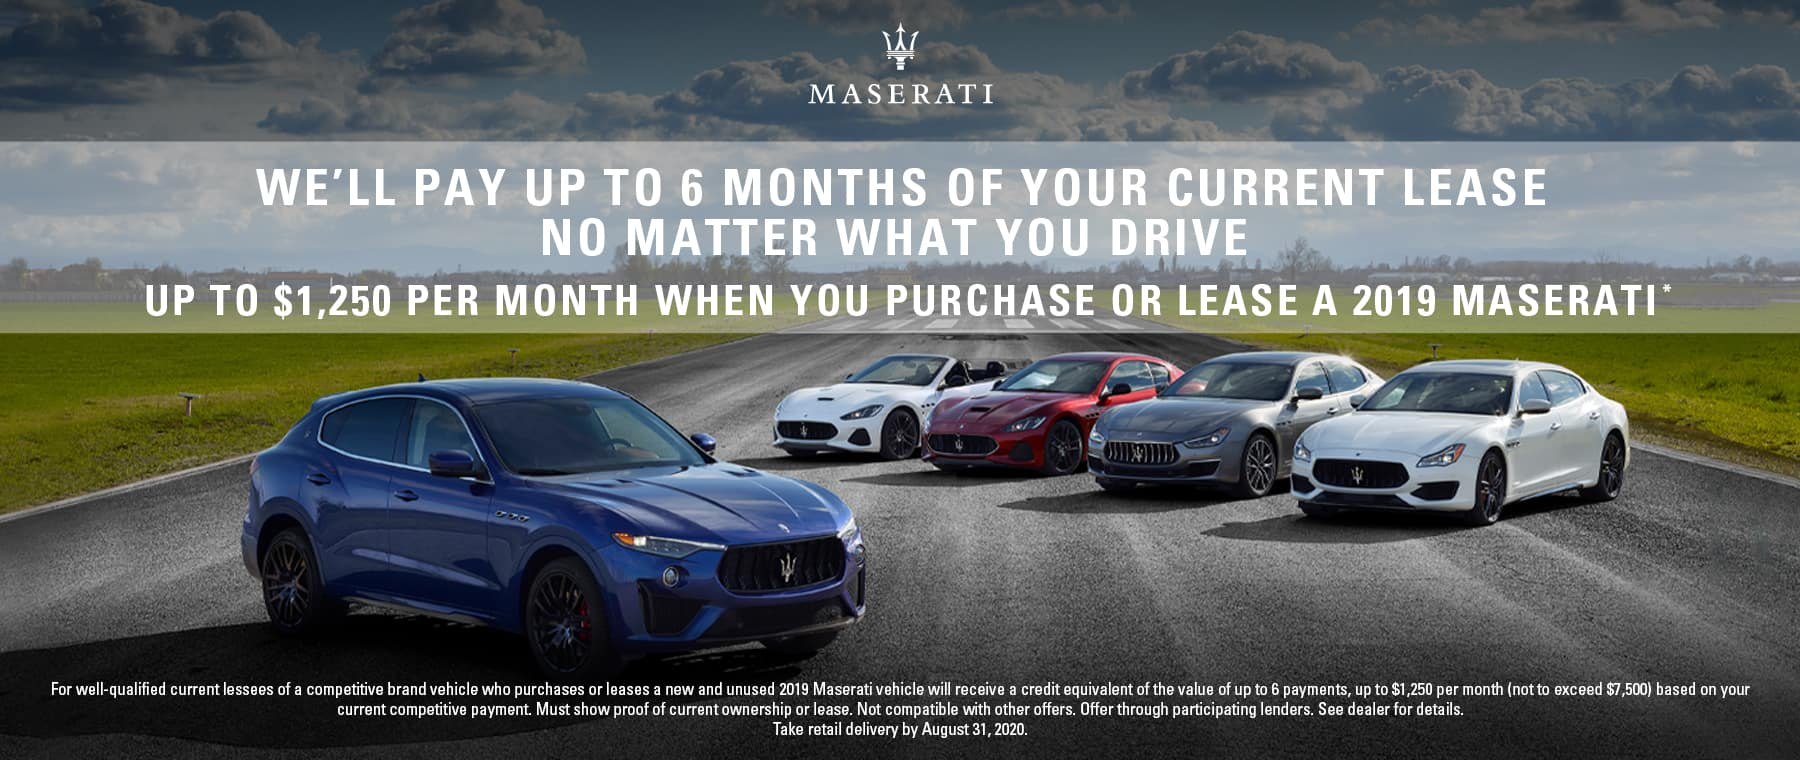 We'll Pay up to 6 months of your current lease